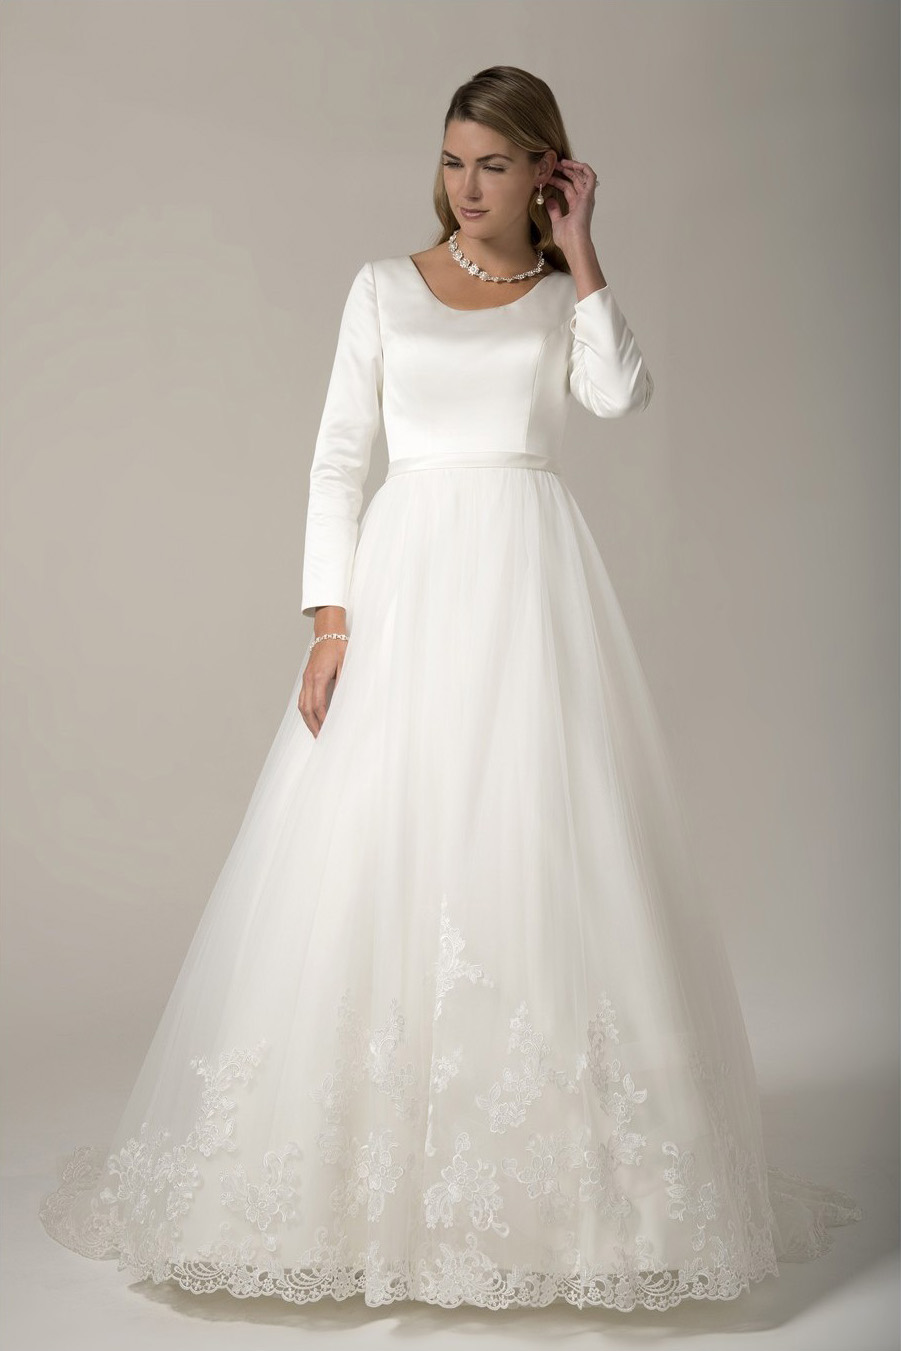 25 Modest Ball Gown Wedding Dresses - 20